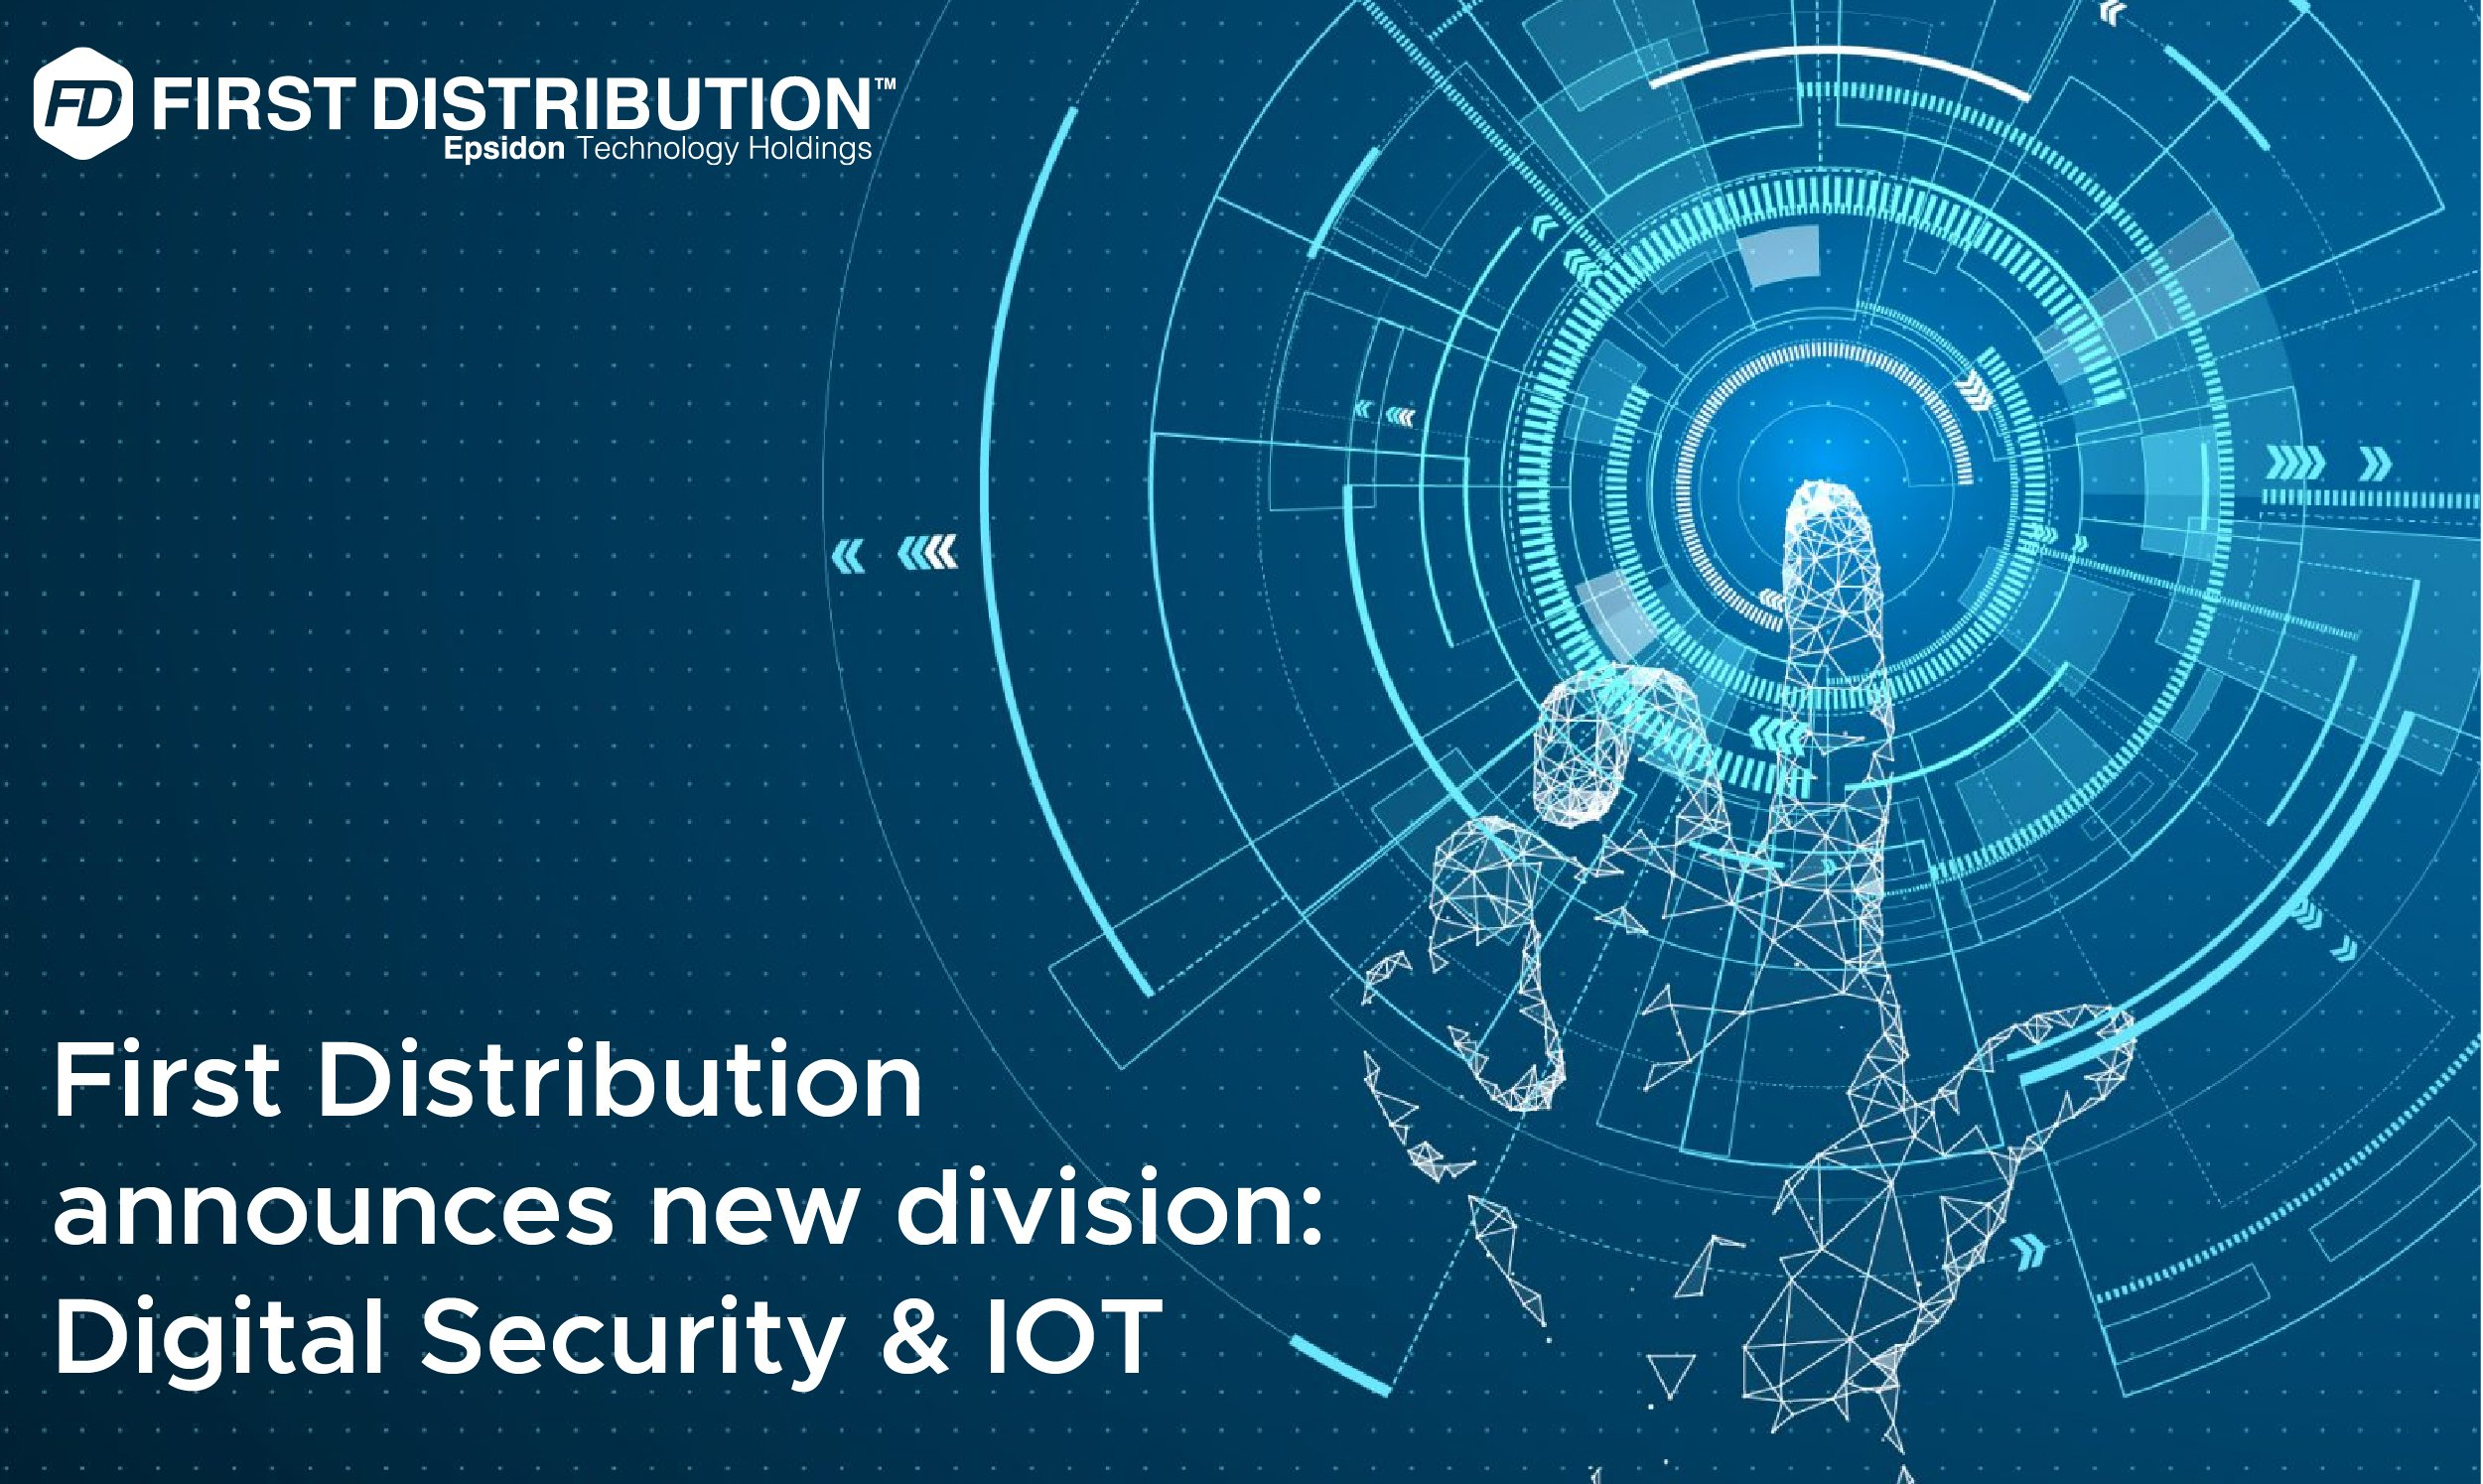 First Distribution ramps up Digital Security and IoT